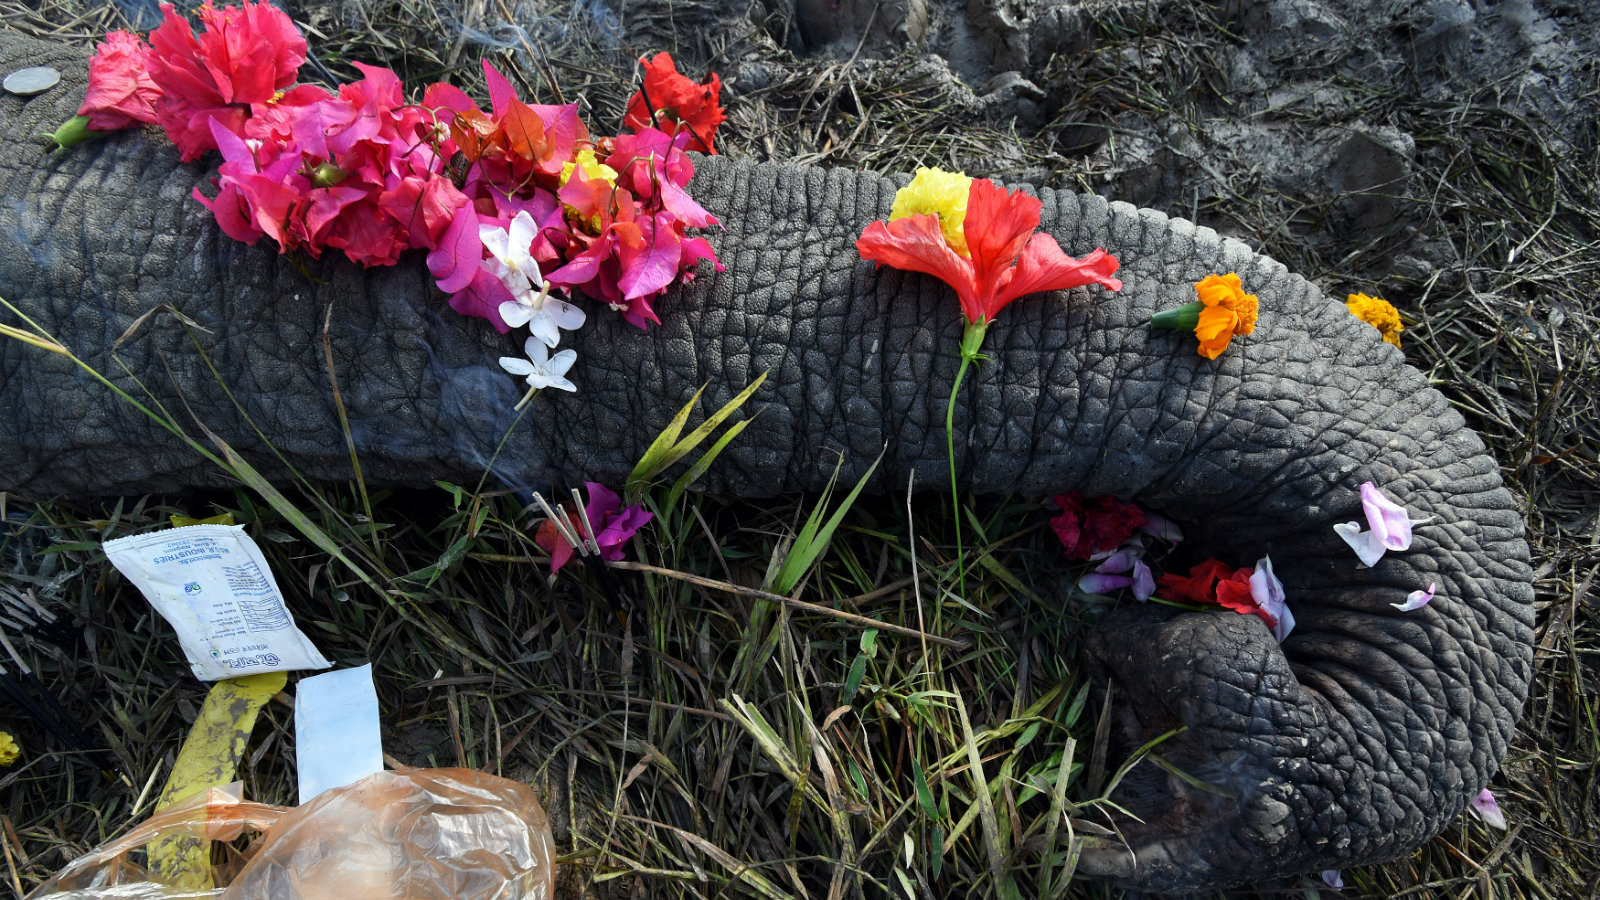 Elephants are getting choked, electrocuted, and even bombed to death in India